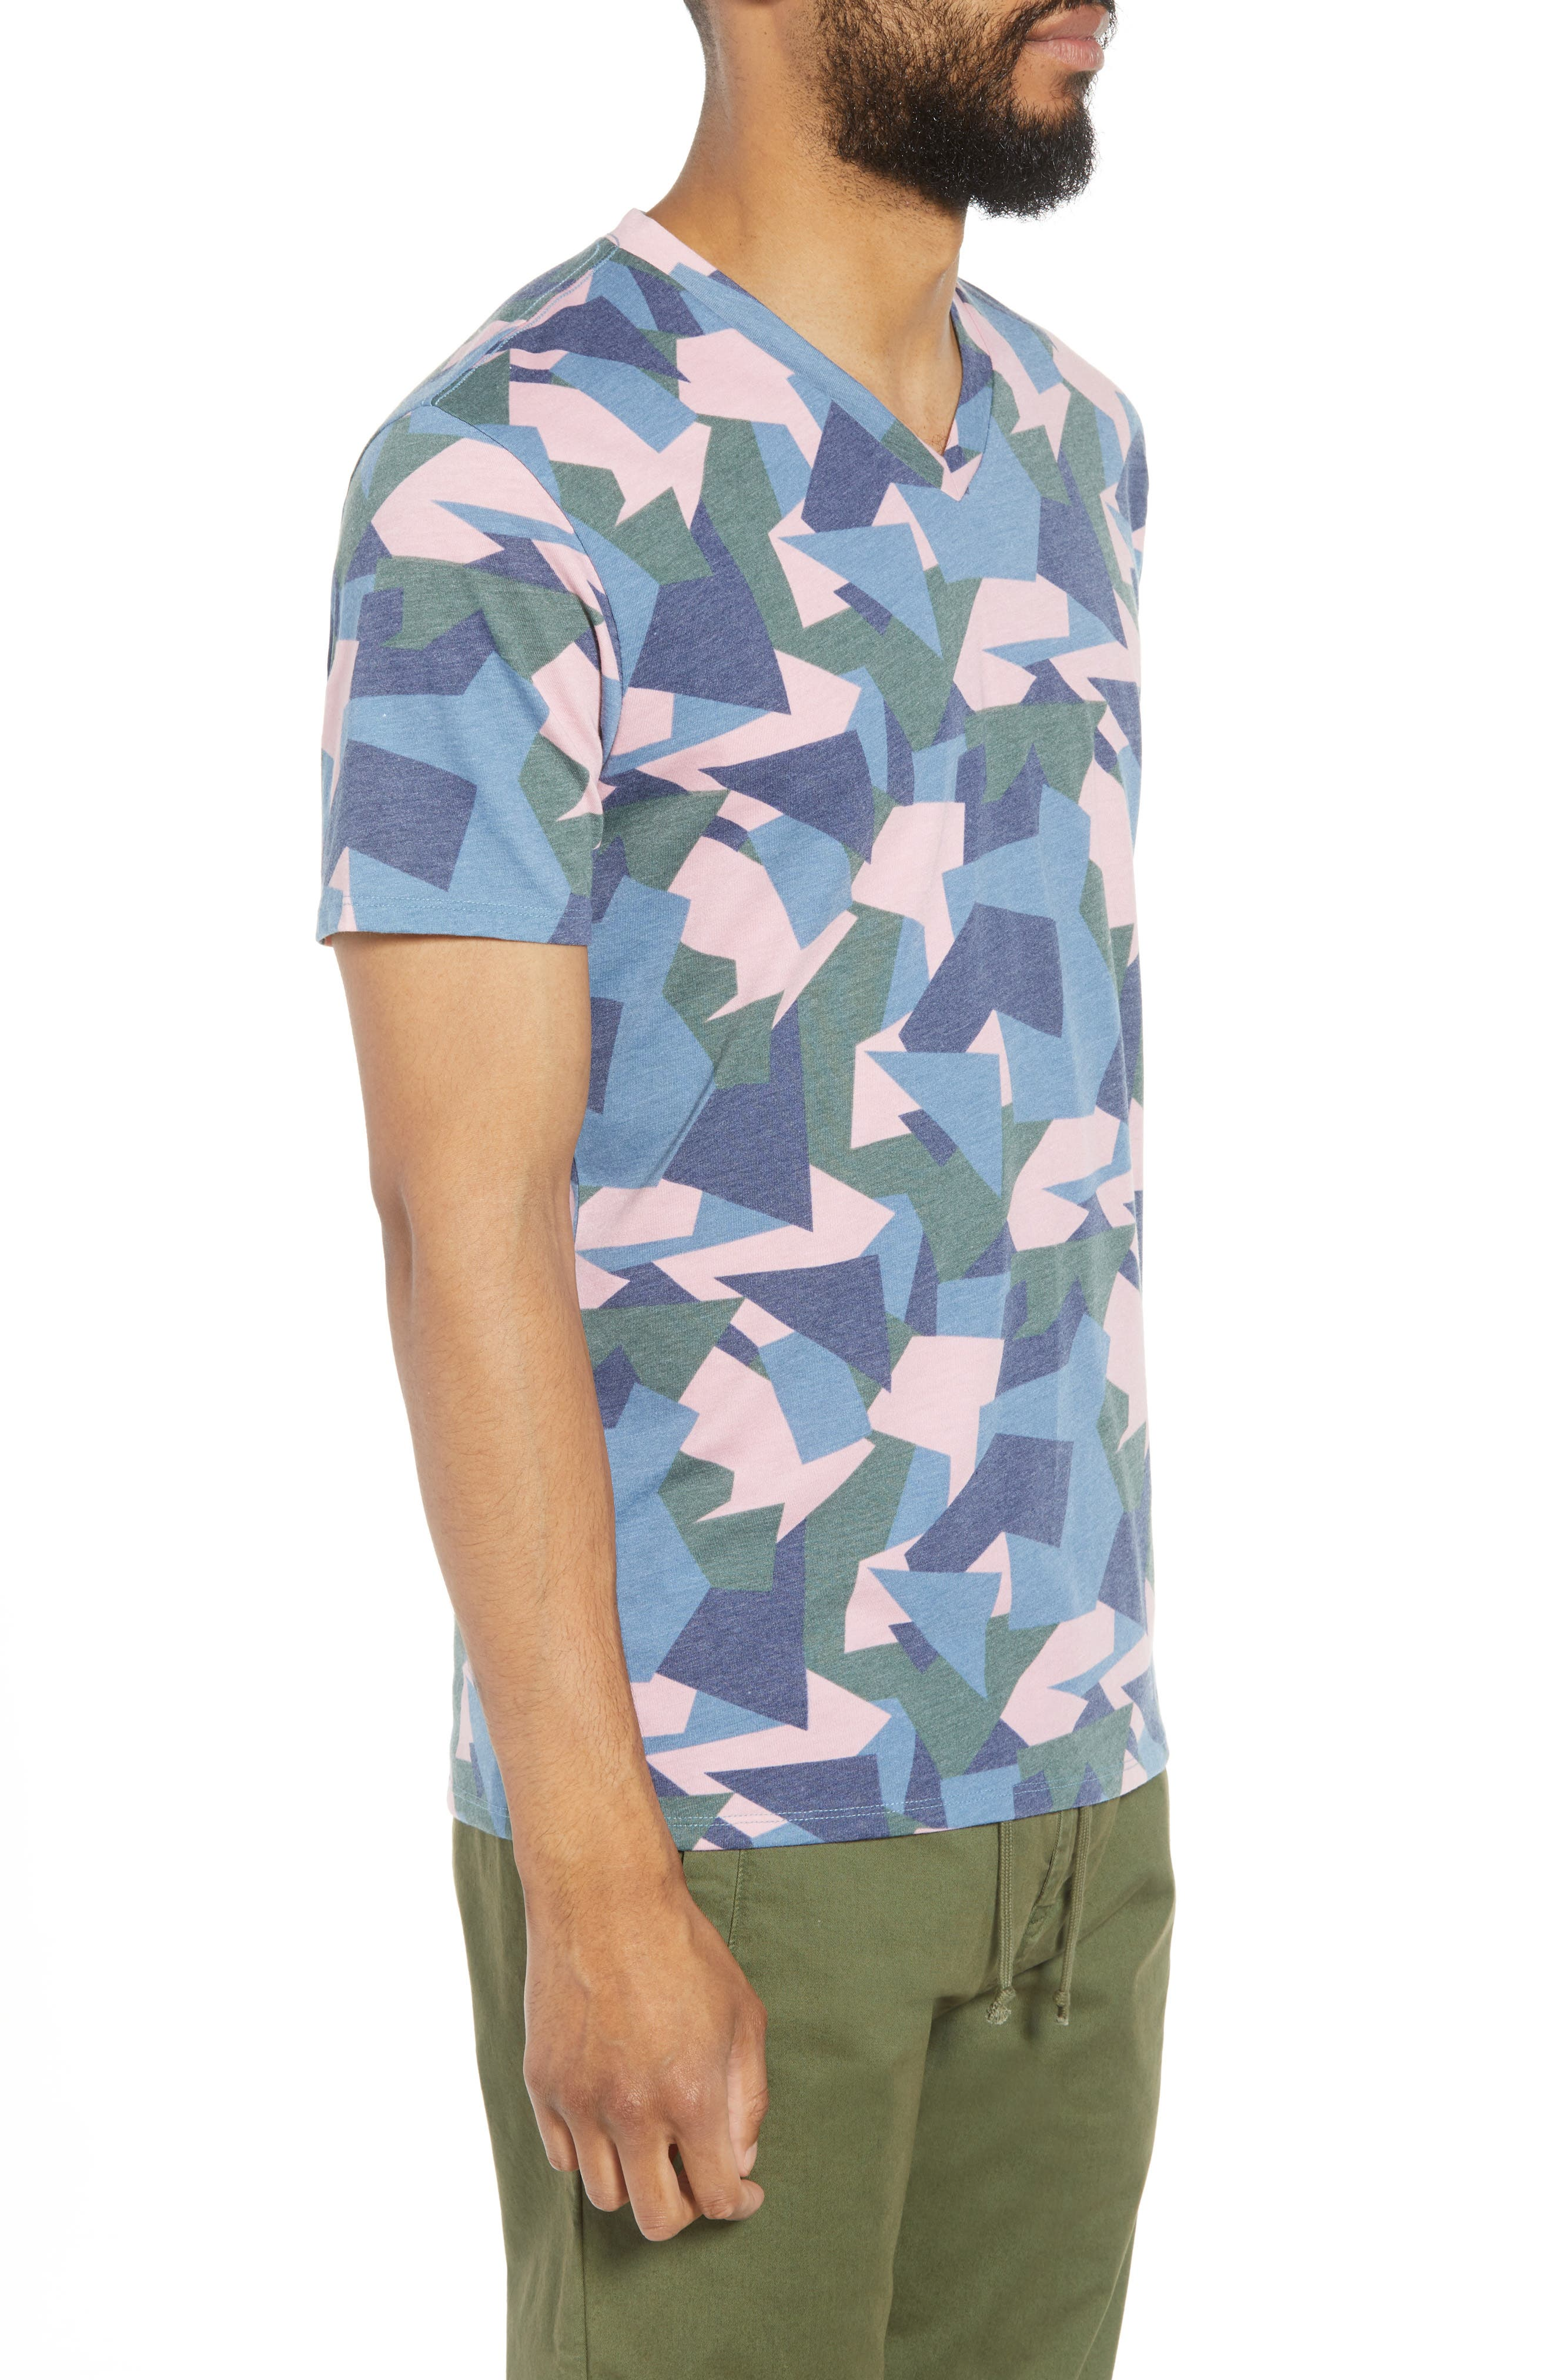 V-Neck T-Shirt,                             Alternate thumbnail 3, color,                             Pink / Grey Abstract Geo Camo